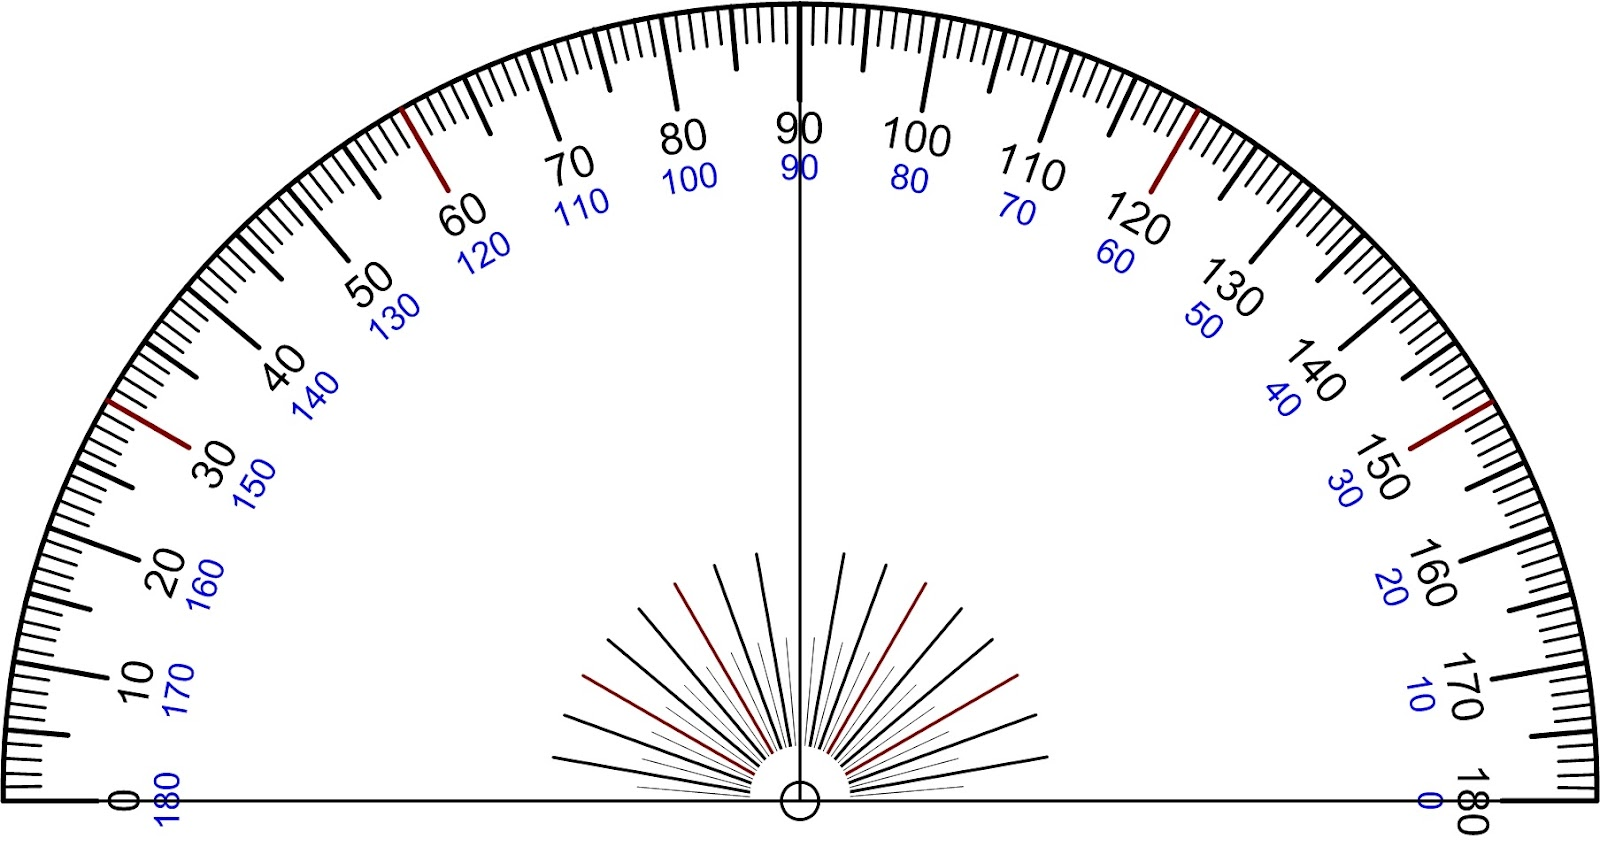 MEDIAN Don Steward mathematics teaching: protractor